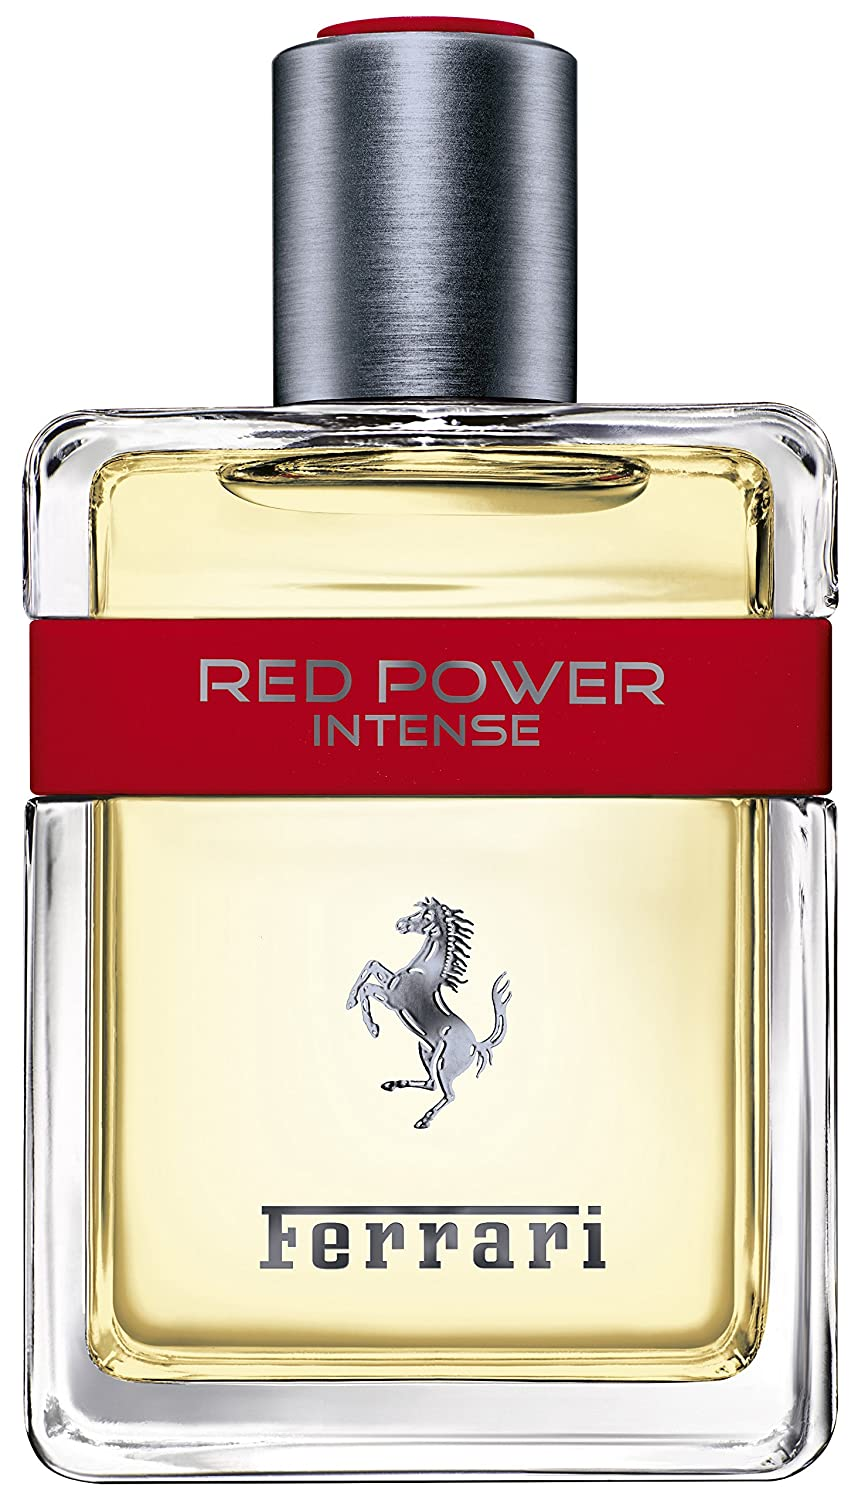 spray inflowcomponent review eau de ebay s perfume global toilette technicalissues red inflow p intense power content res ferrari